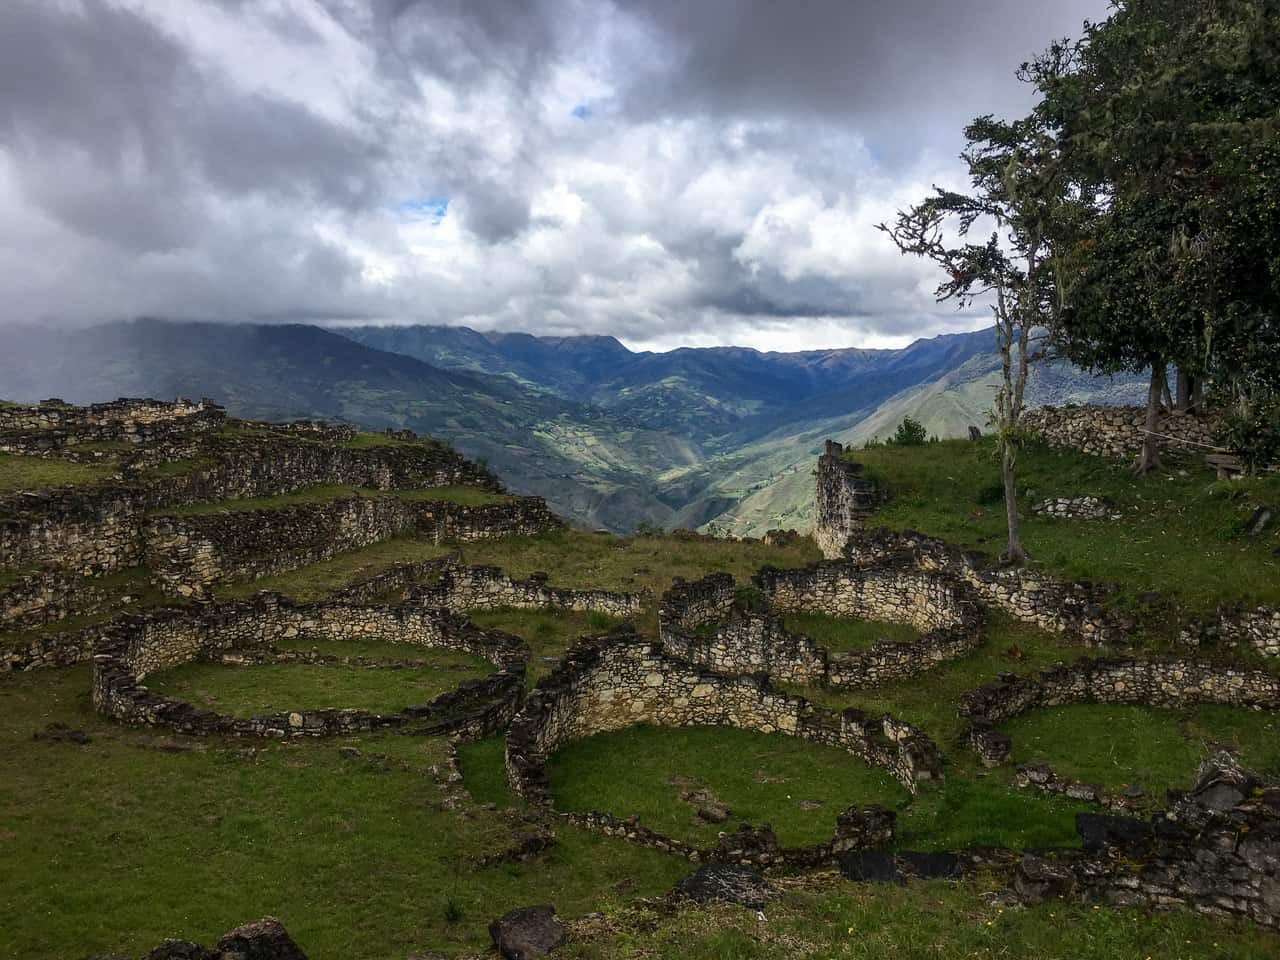 The remains of the stone dwellings which are 1,500 years old now - Kuelap fortress of Northern Peru.